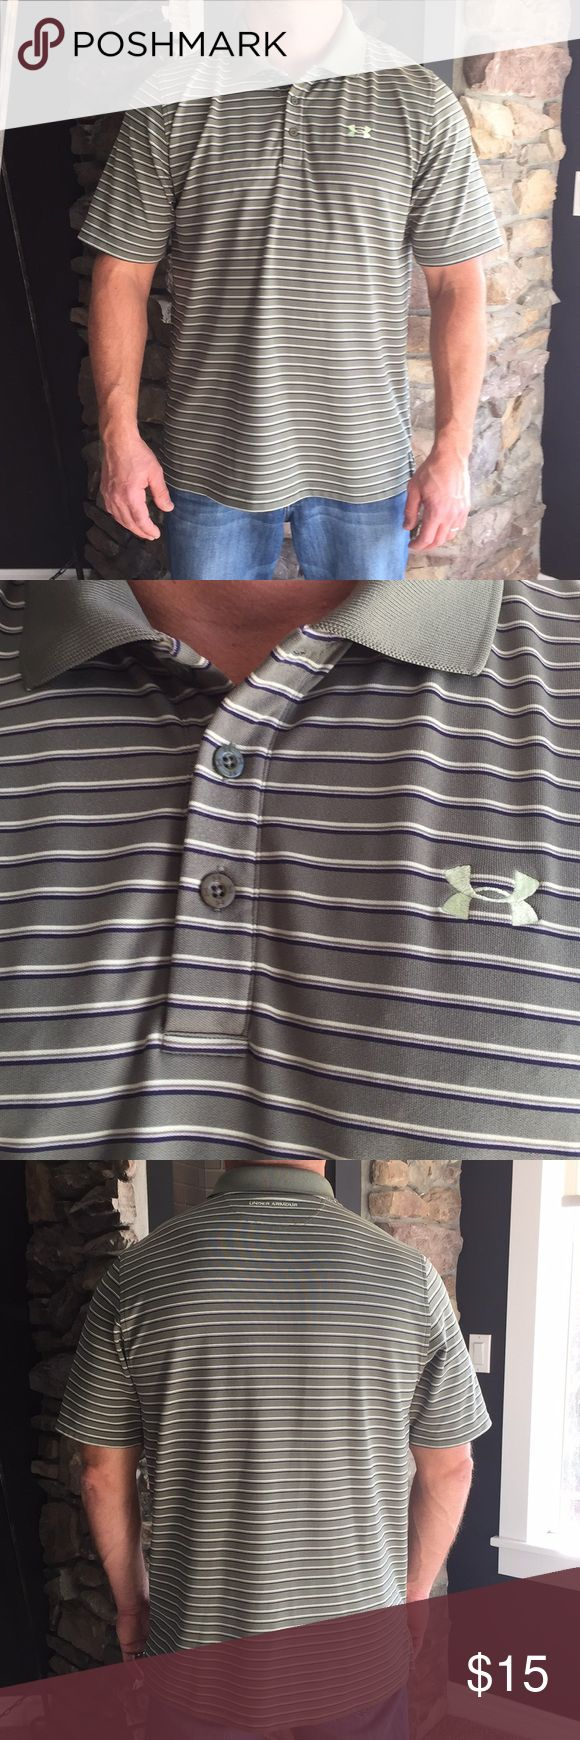 Men's Under Armour Golf Polo Shirt Men's Under Armour Golf Polo Striped Shirt. Size XL. Color Olive Green Stripes.  Gently Worn, Great Condition, No Flaws. ⚡️Fast Shipping 🚫No Trades. Under Armour Shirts Polos